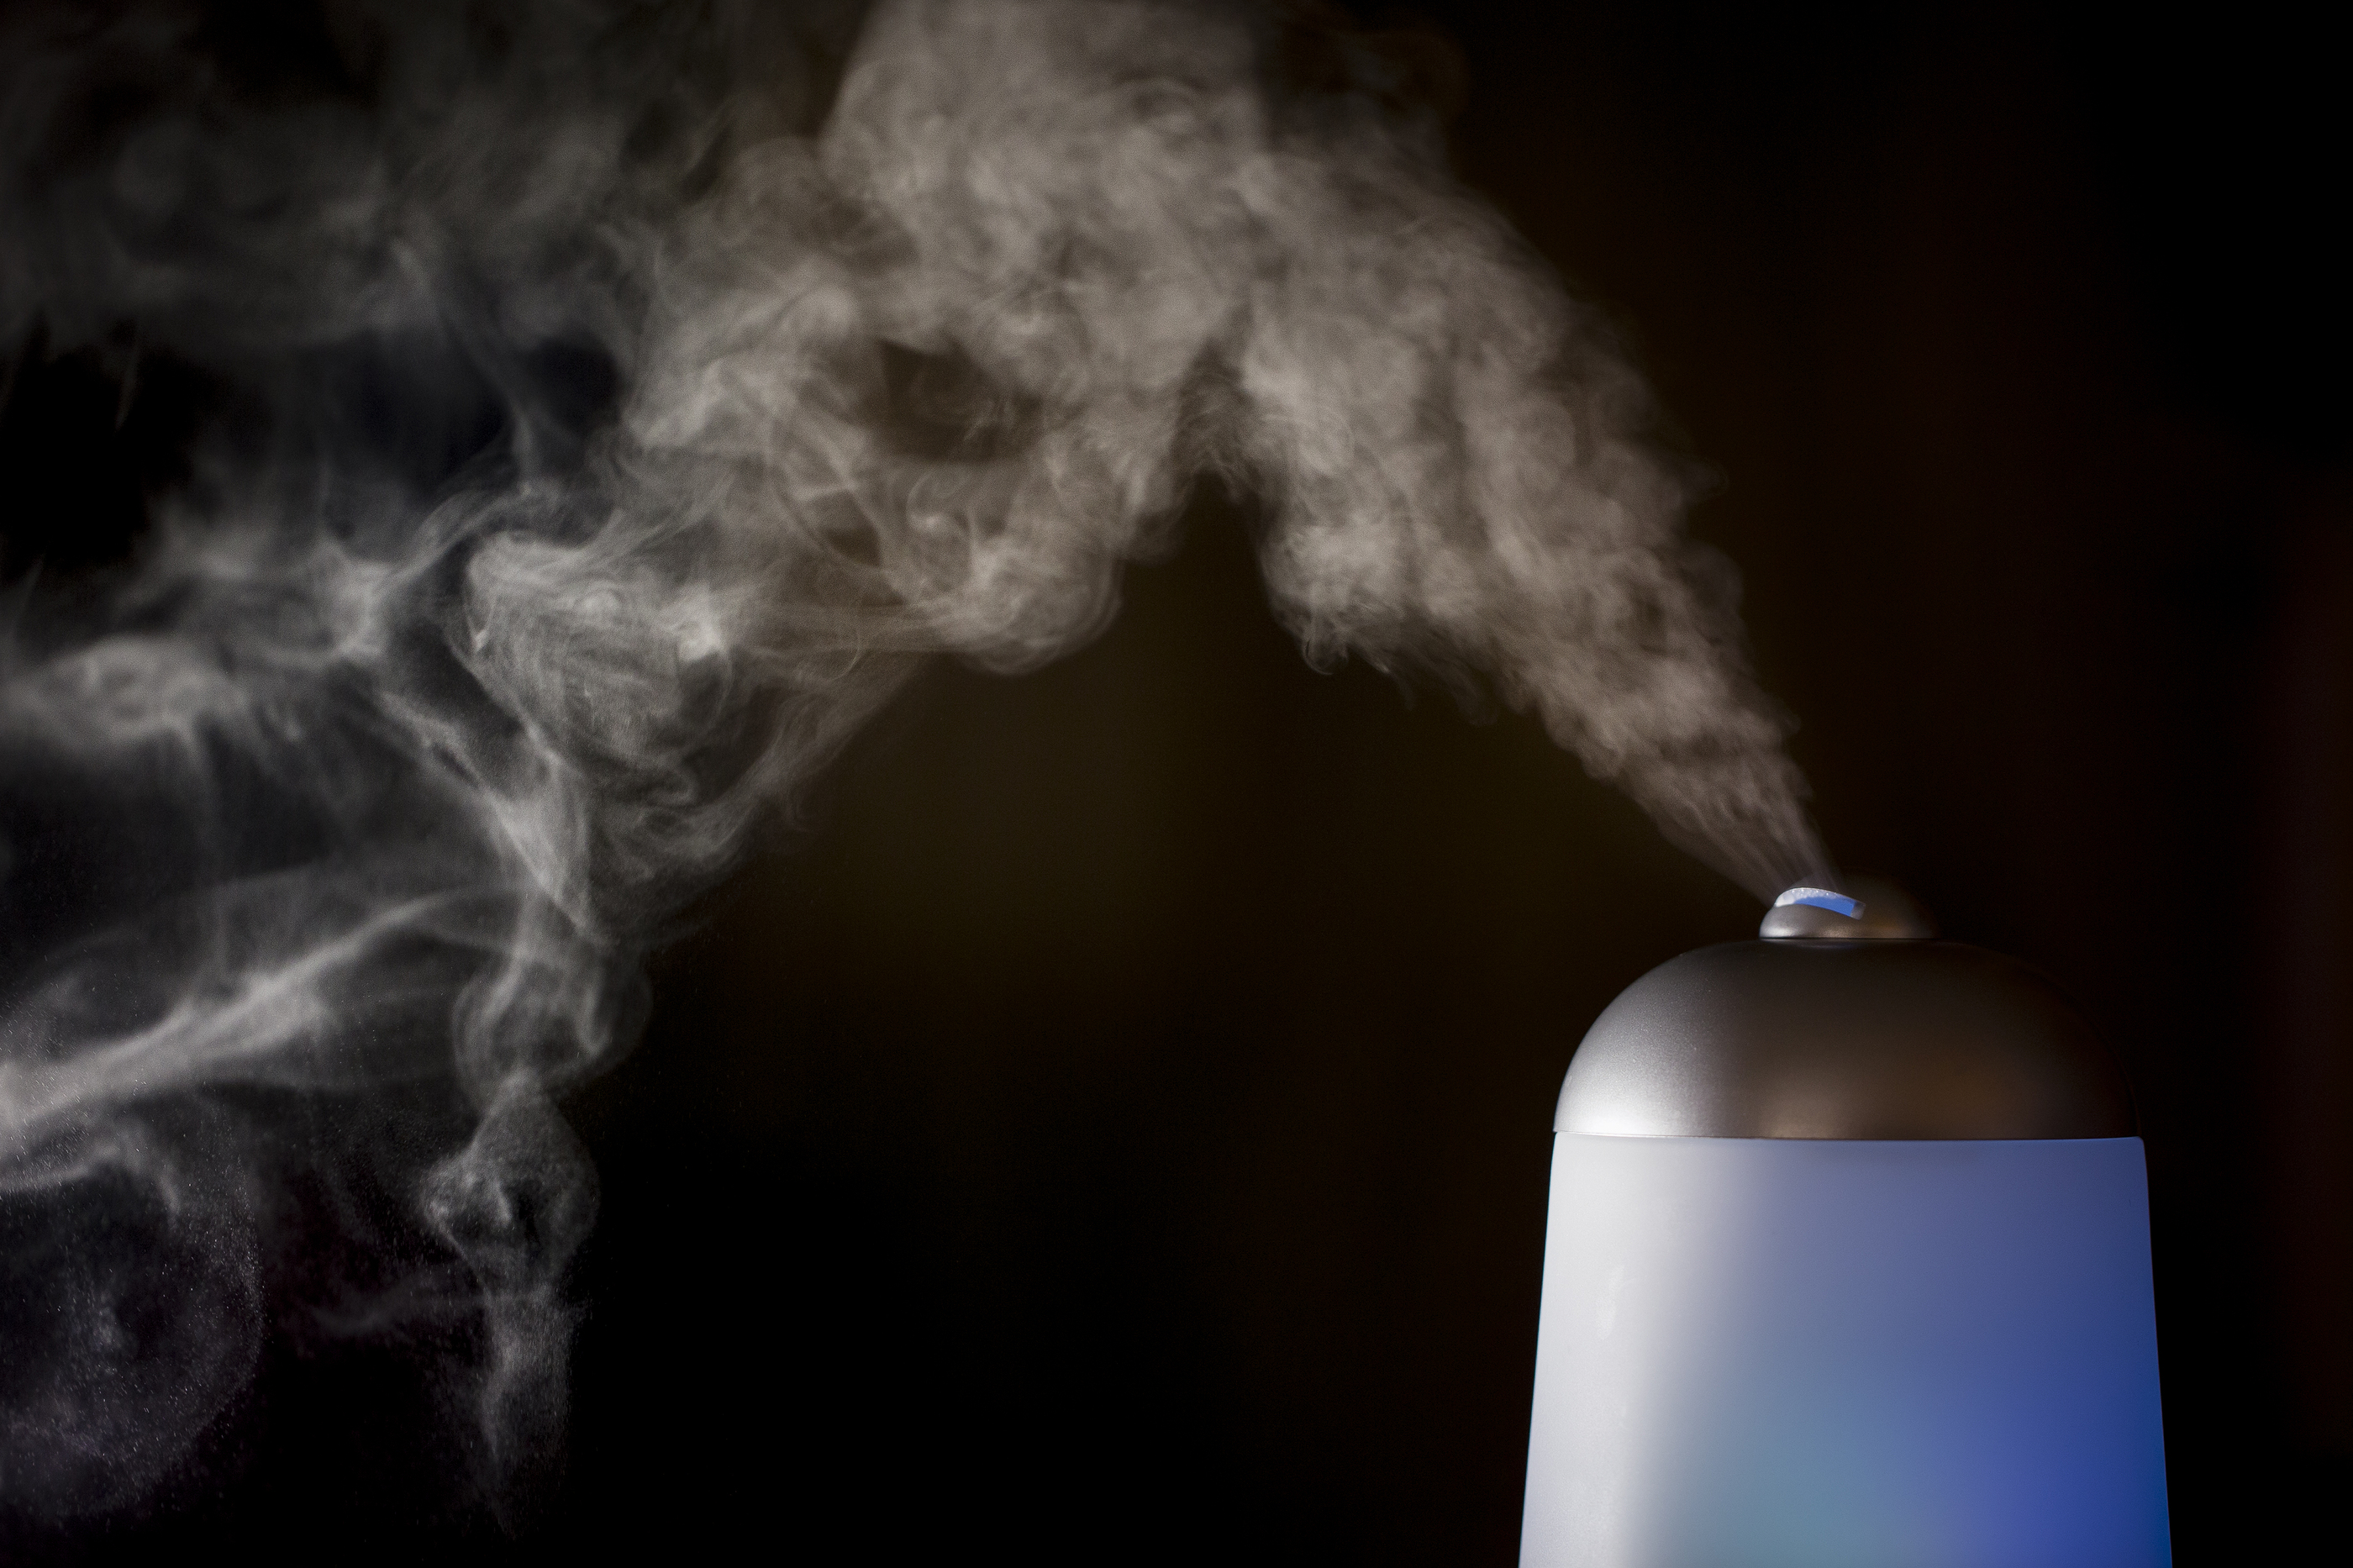 Choose a Diffuser that Meets Your Needs